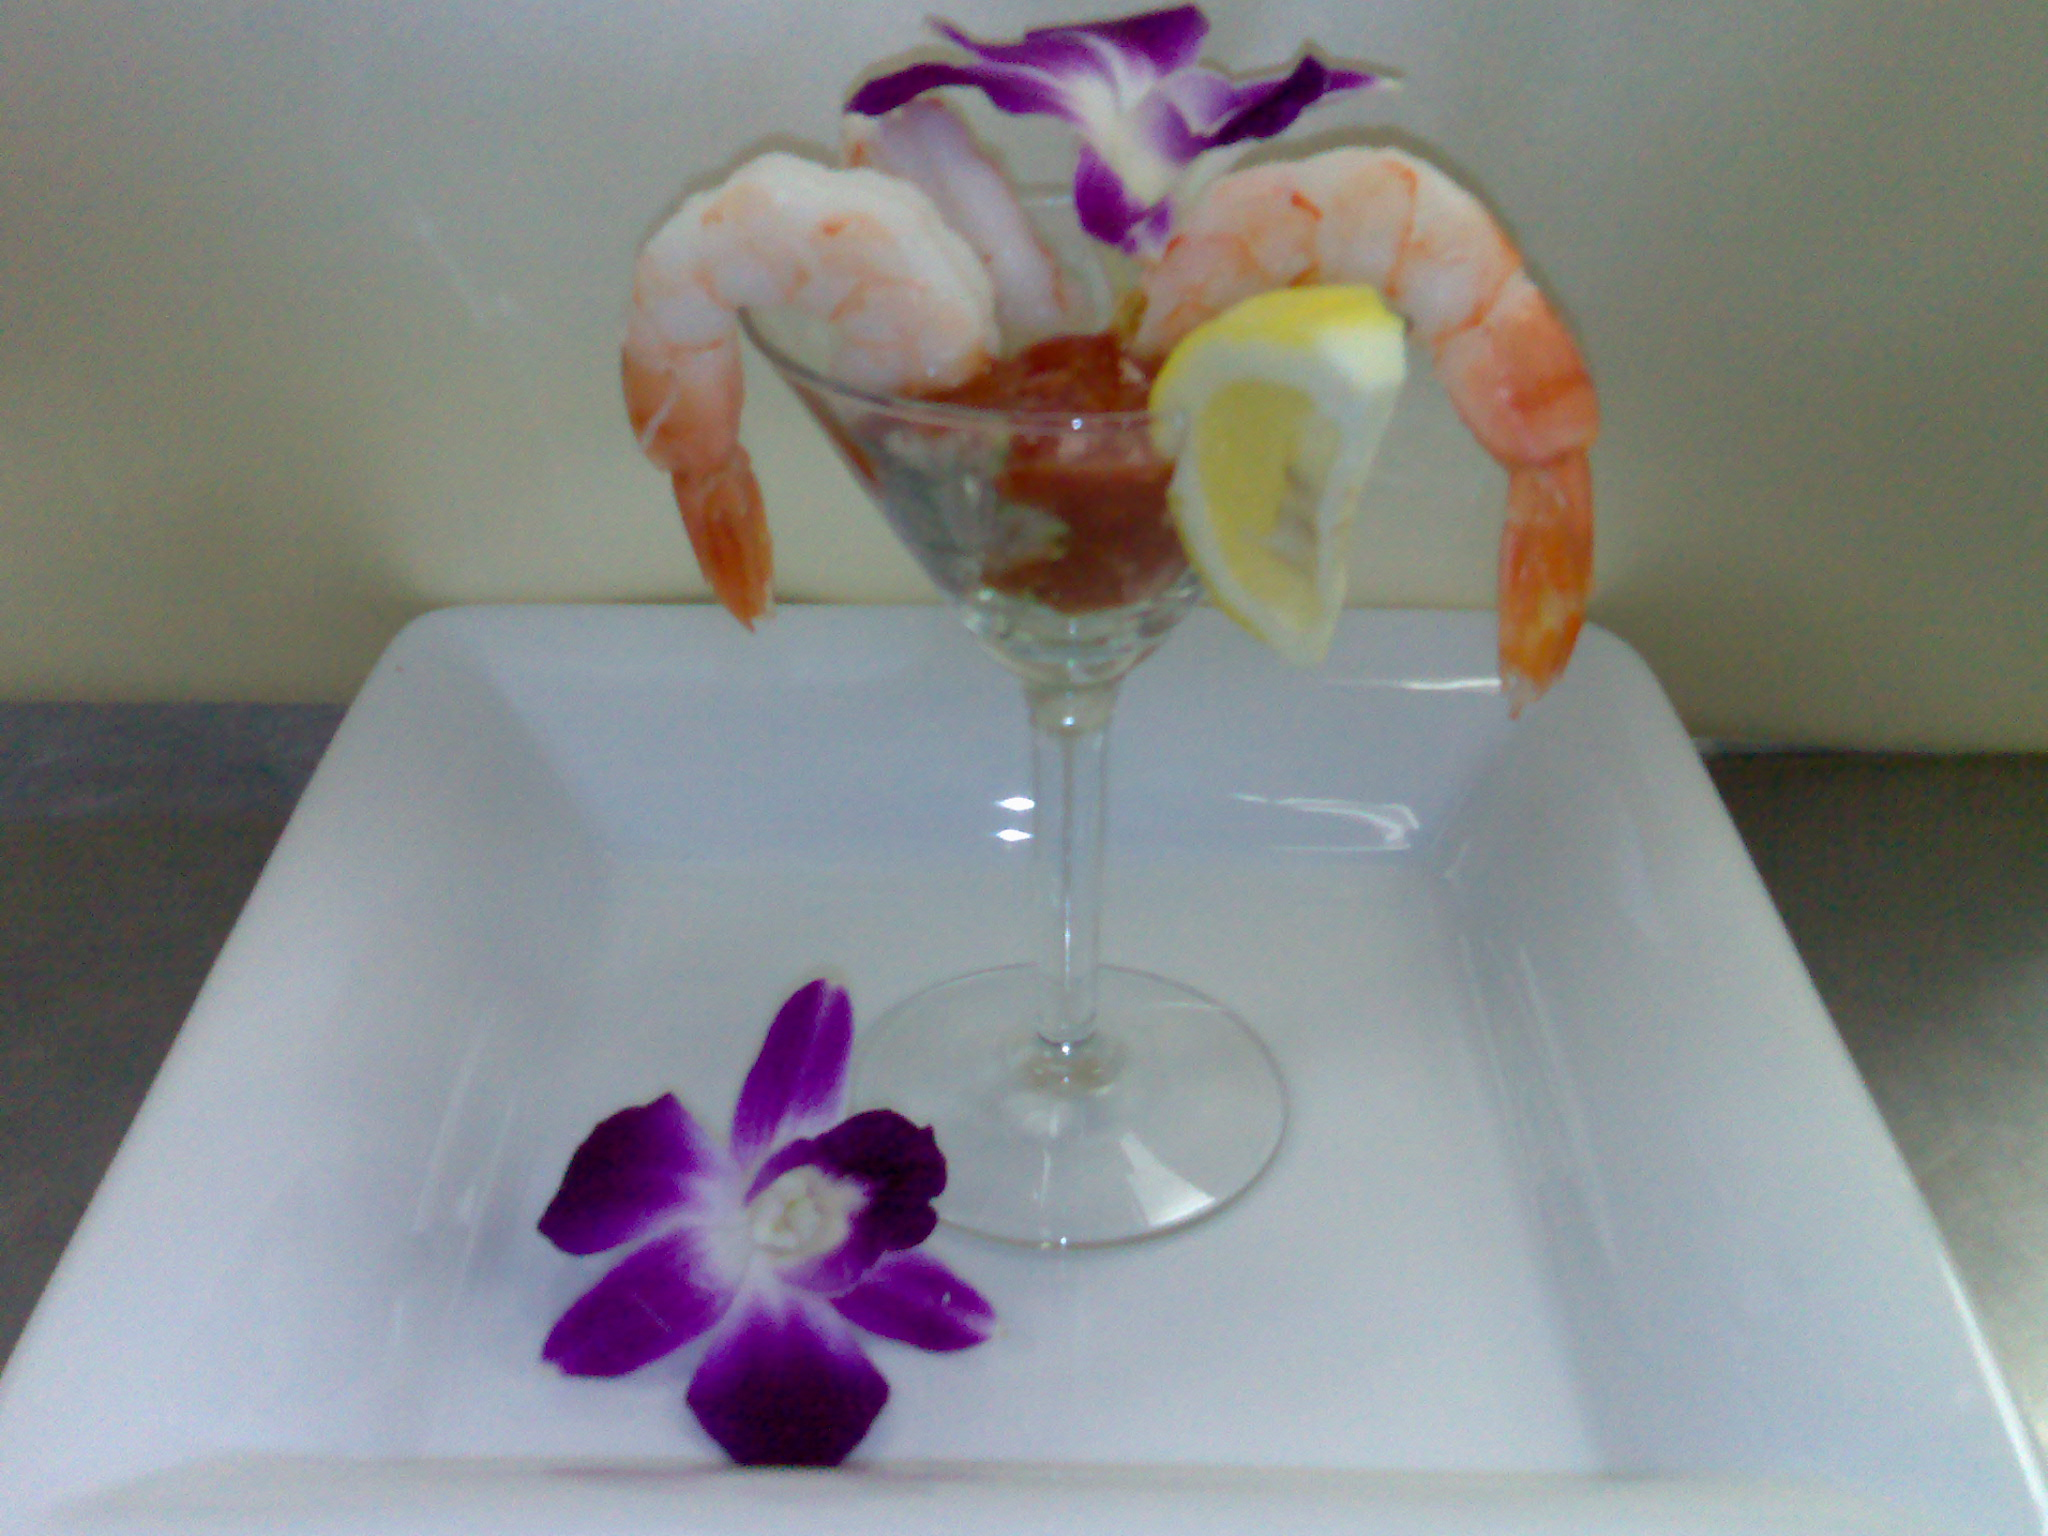 Homemade Shrimp Seafood picture